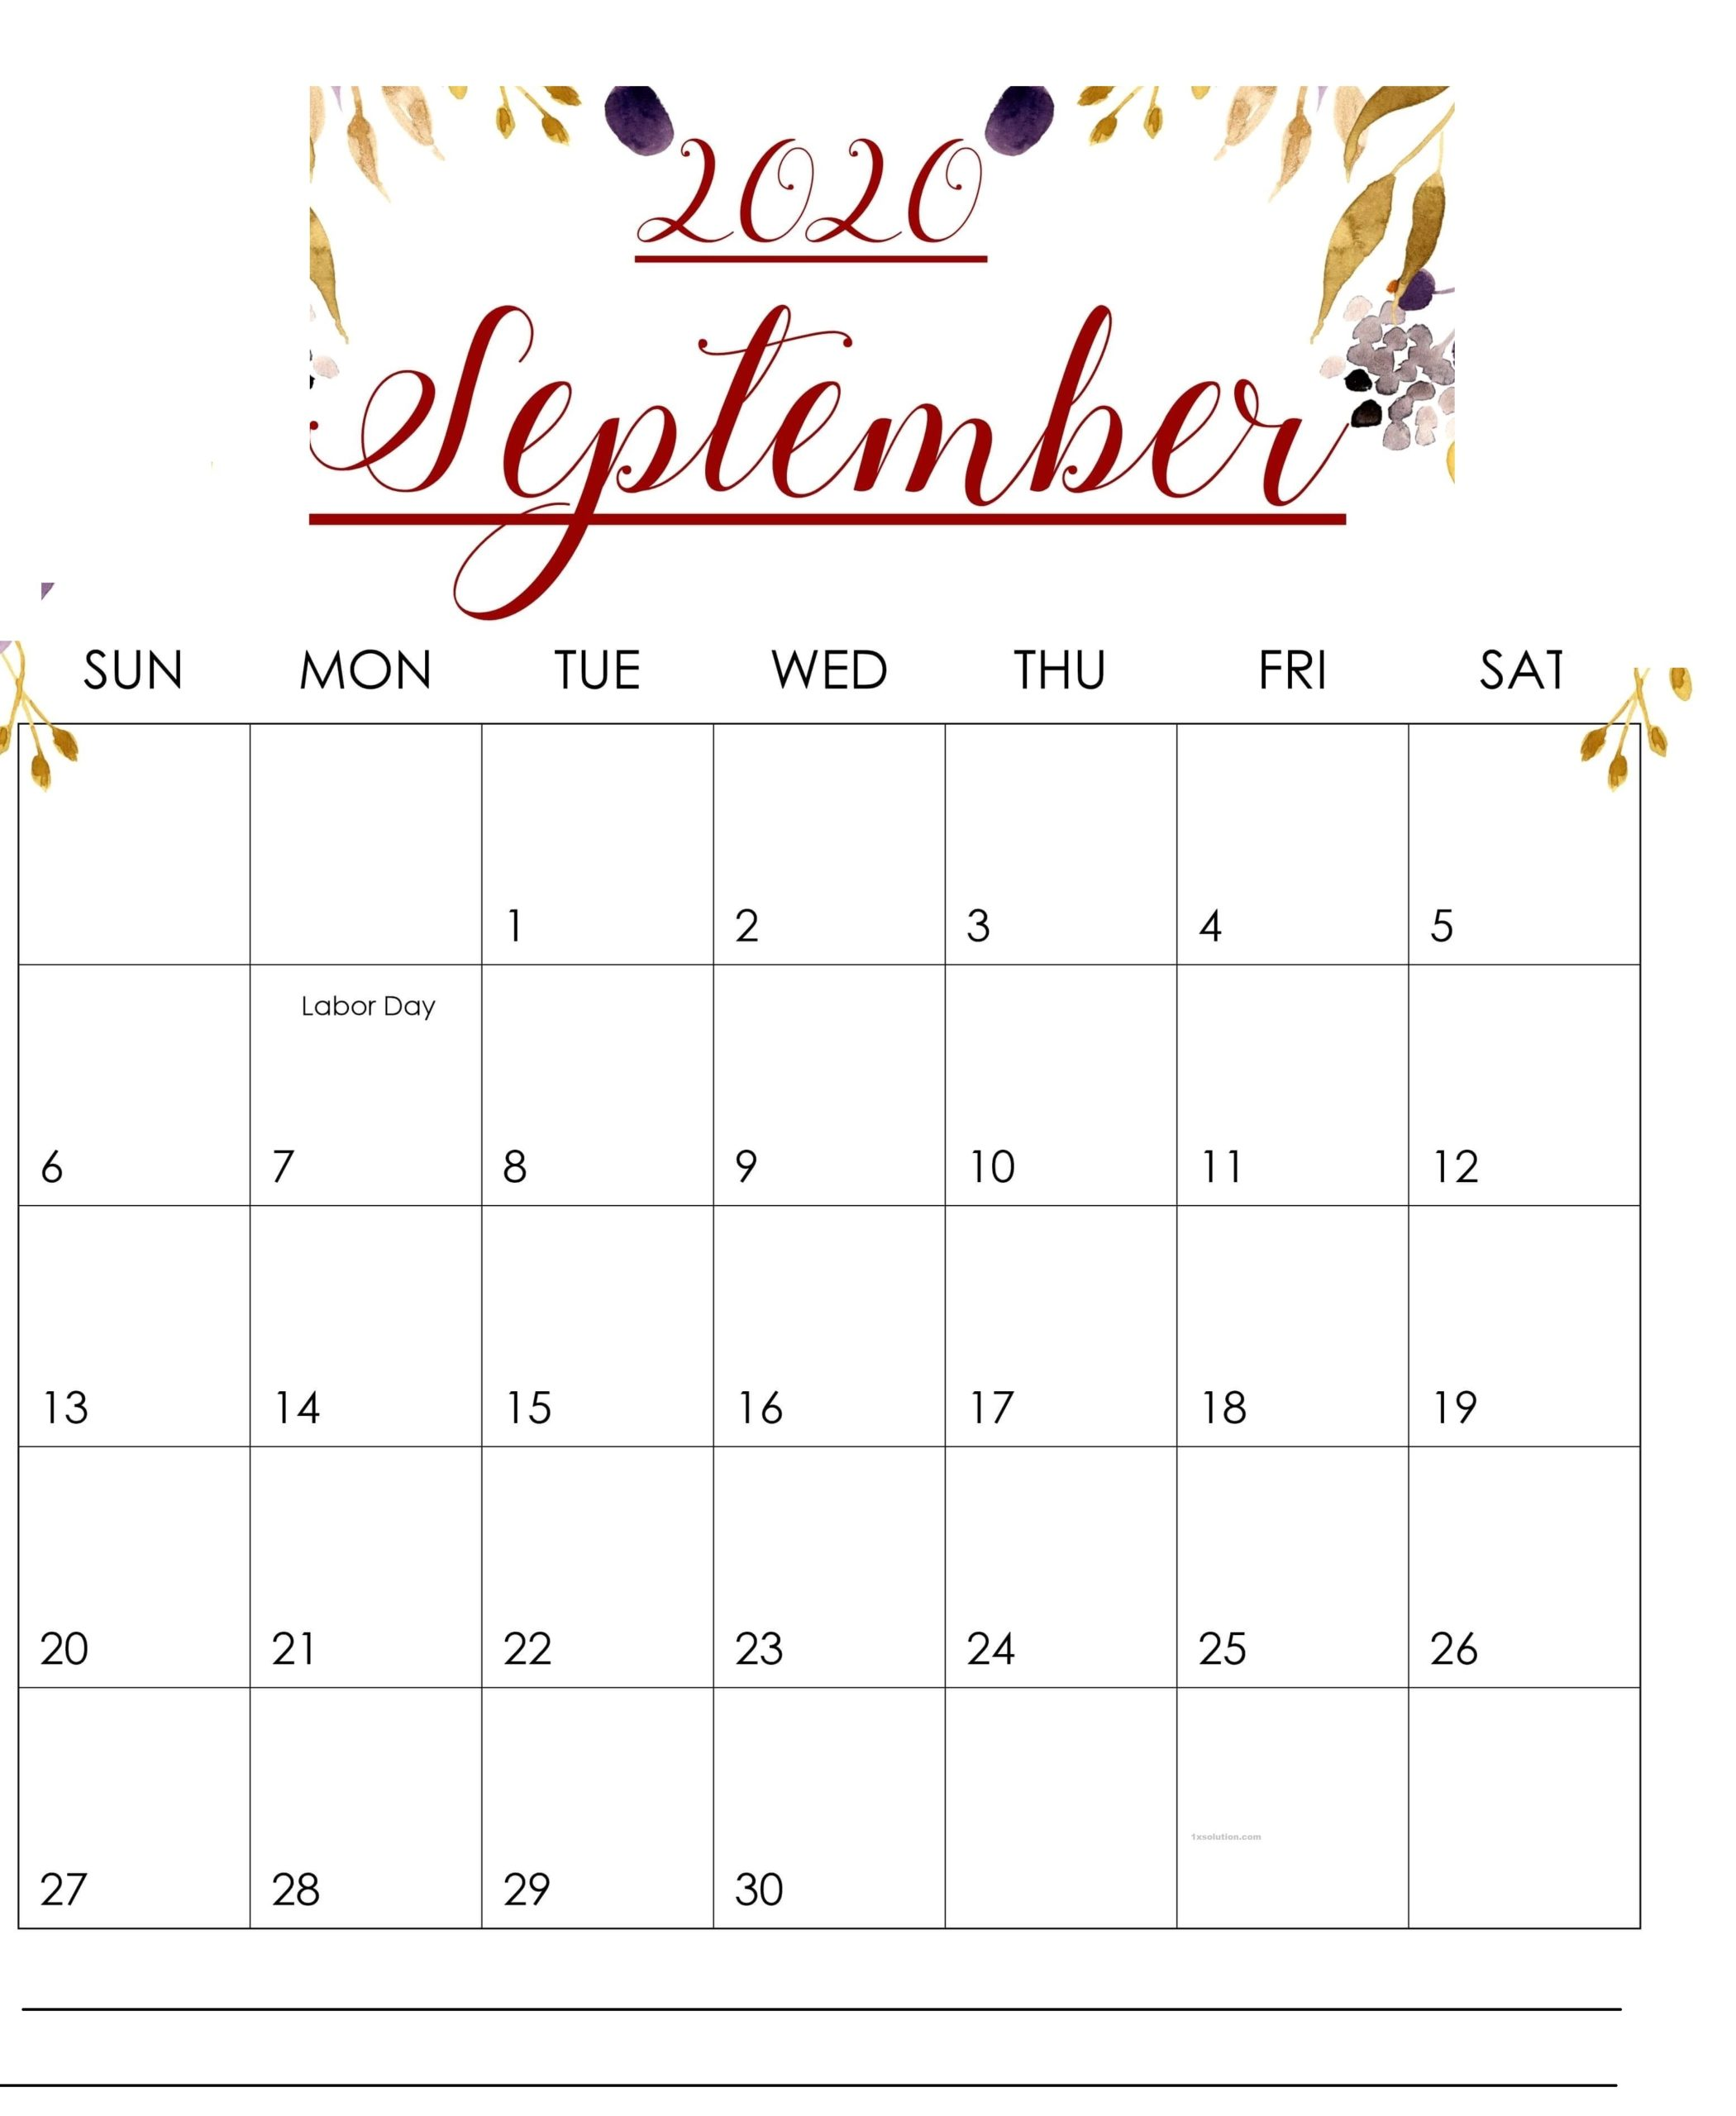 Download September 2020 Calendar